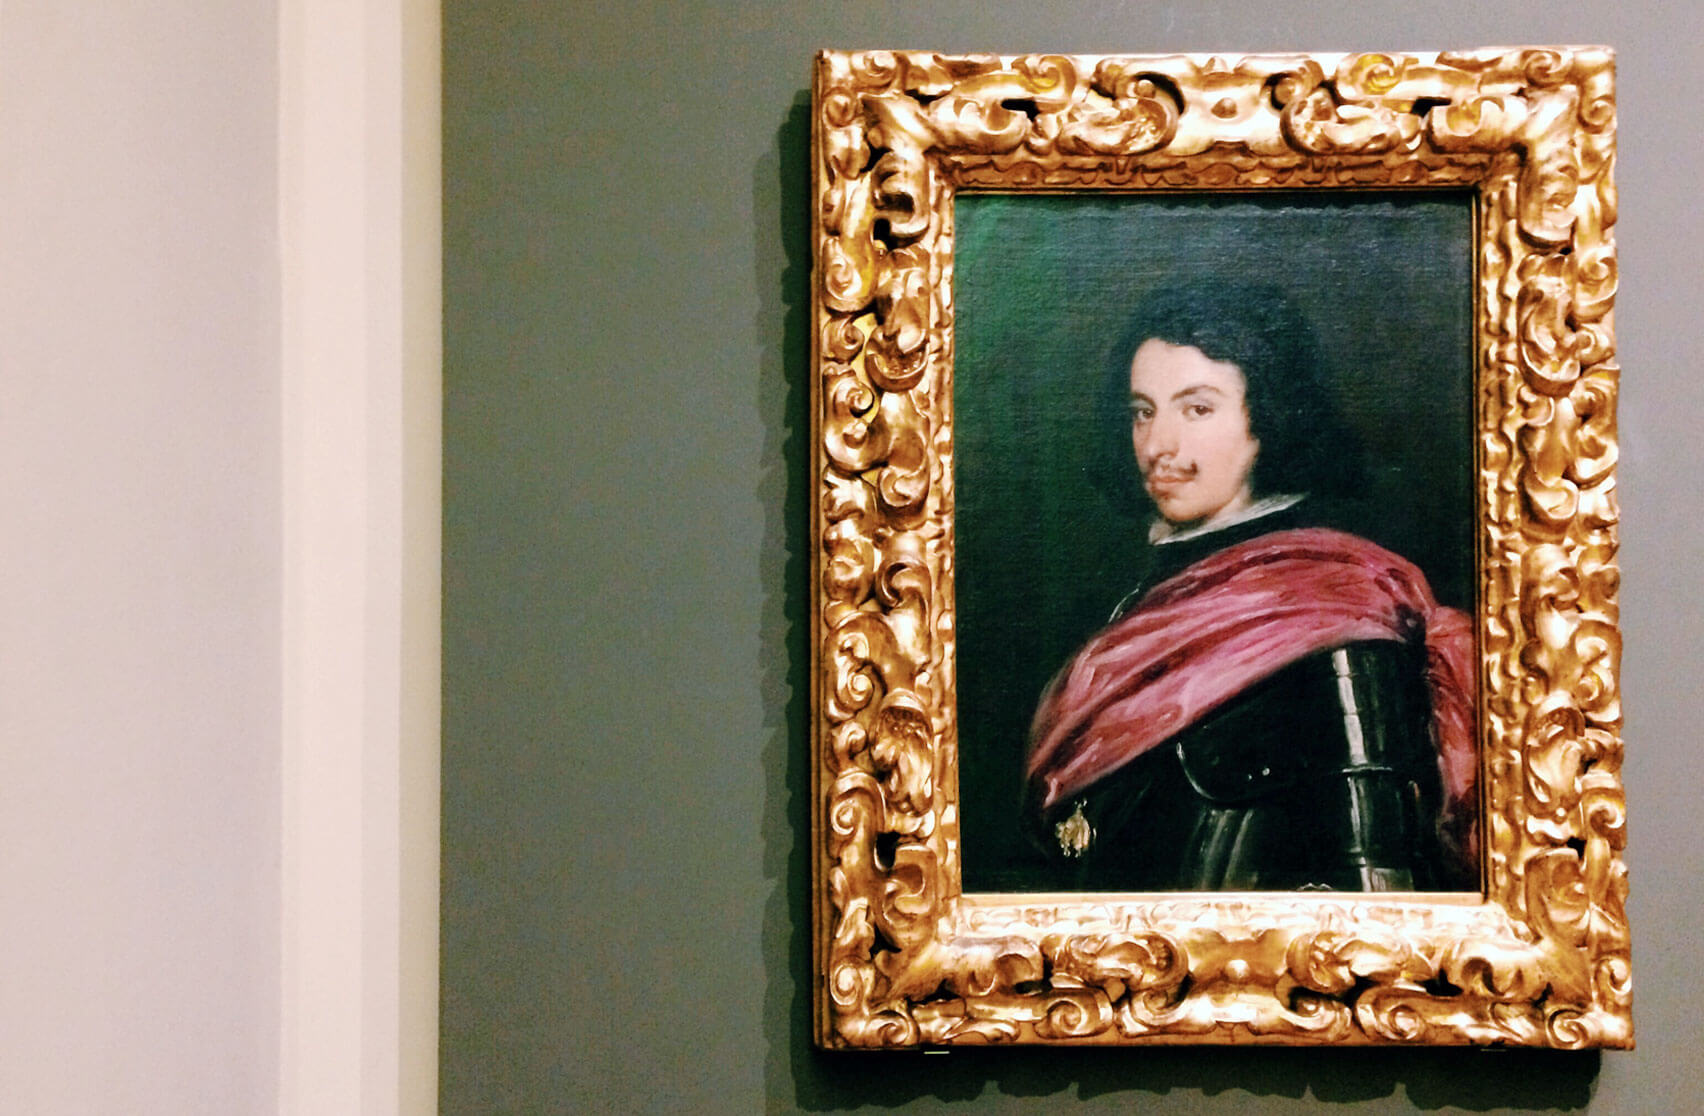 Estense Gallery - Portrait of Francesco I d'Este by Velazquez